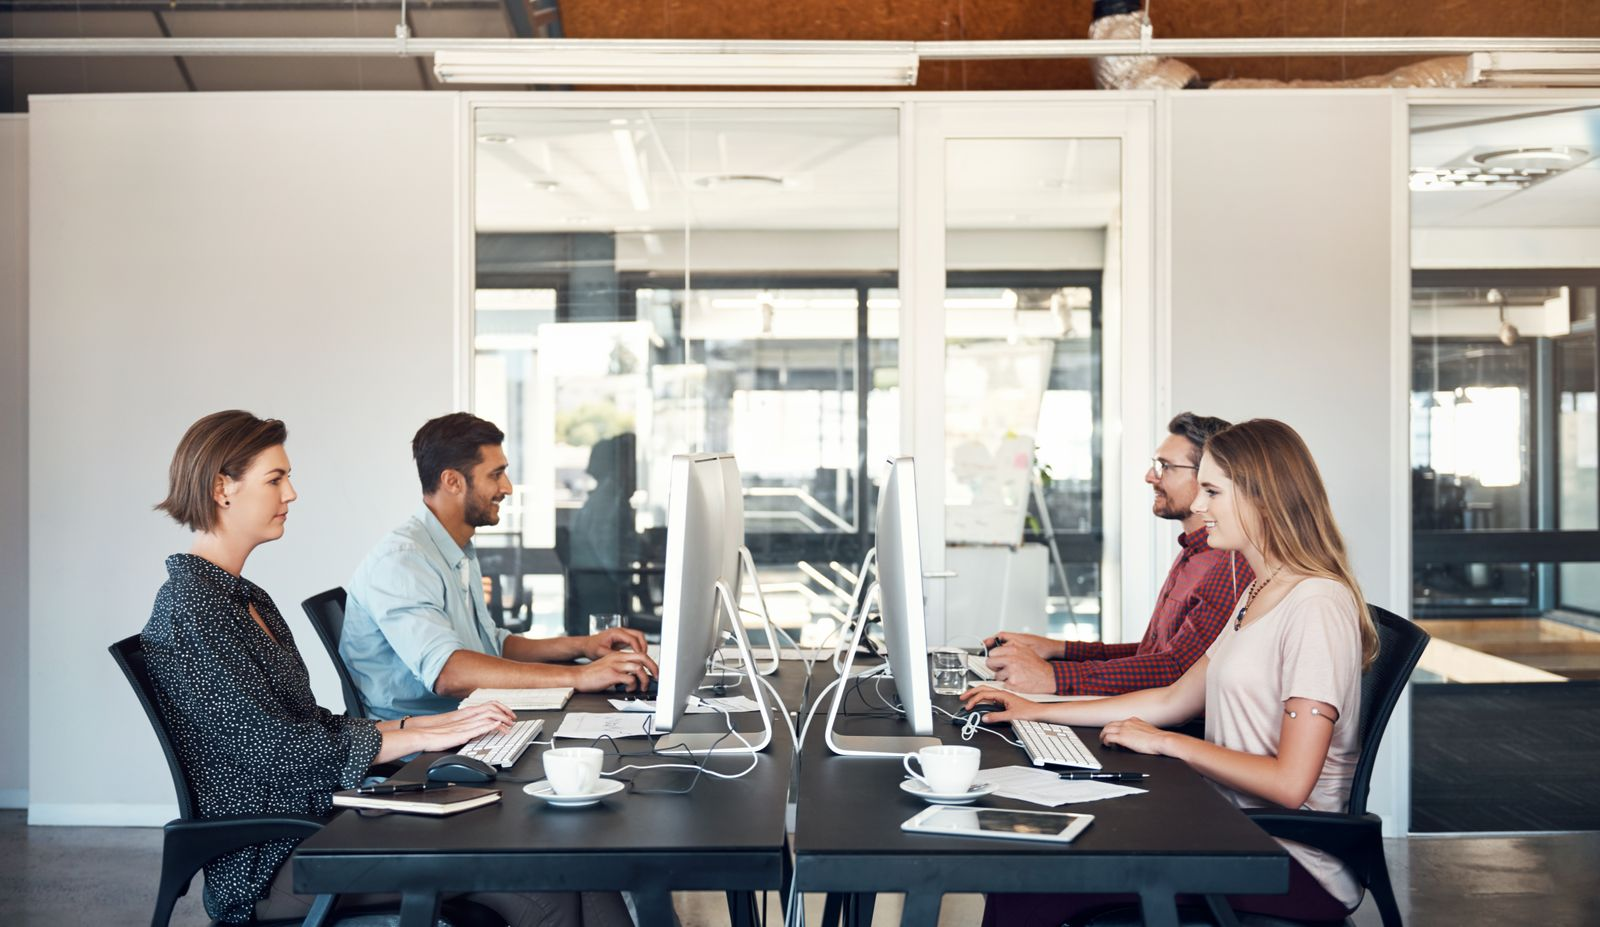 Increase Productivity at the Office: Create More Comfortable Workstations